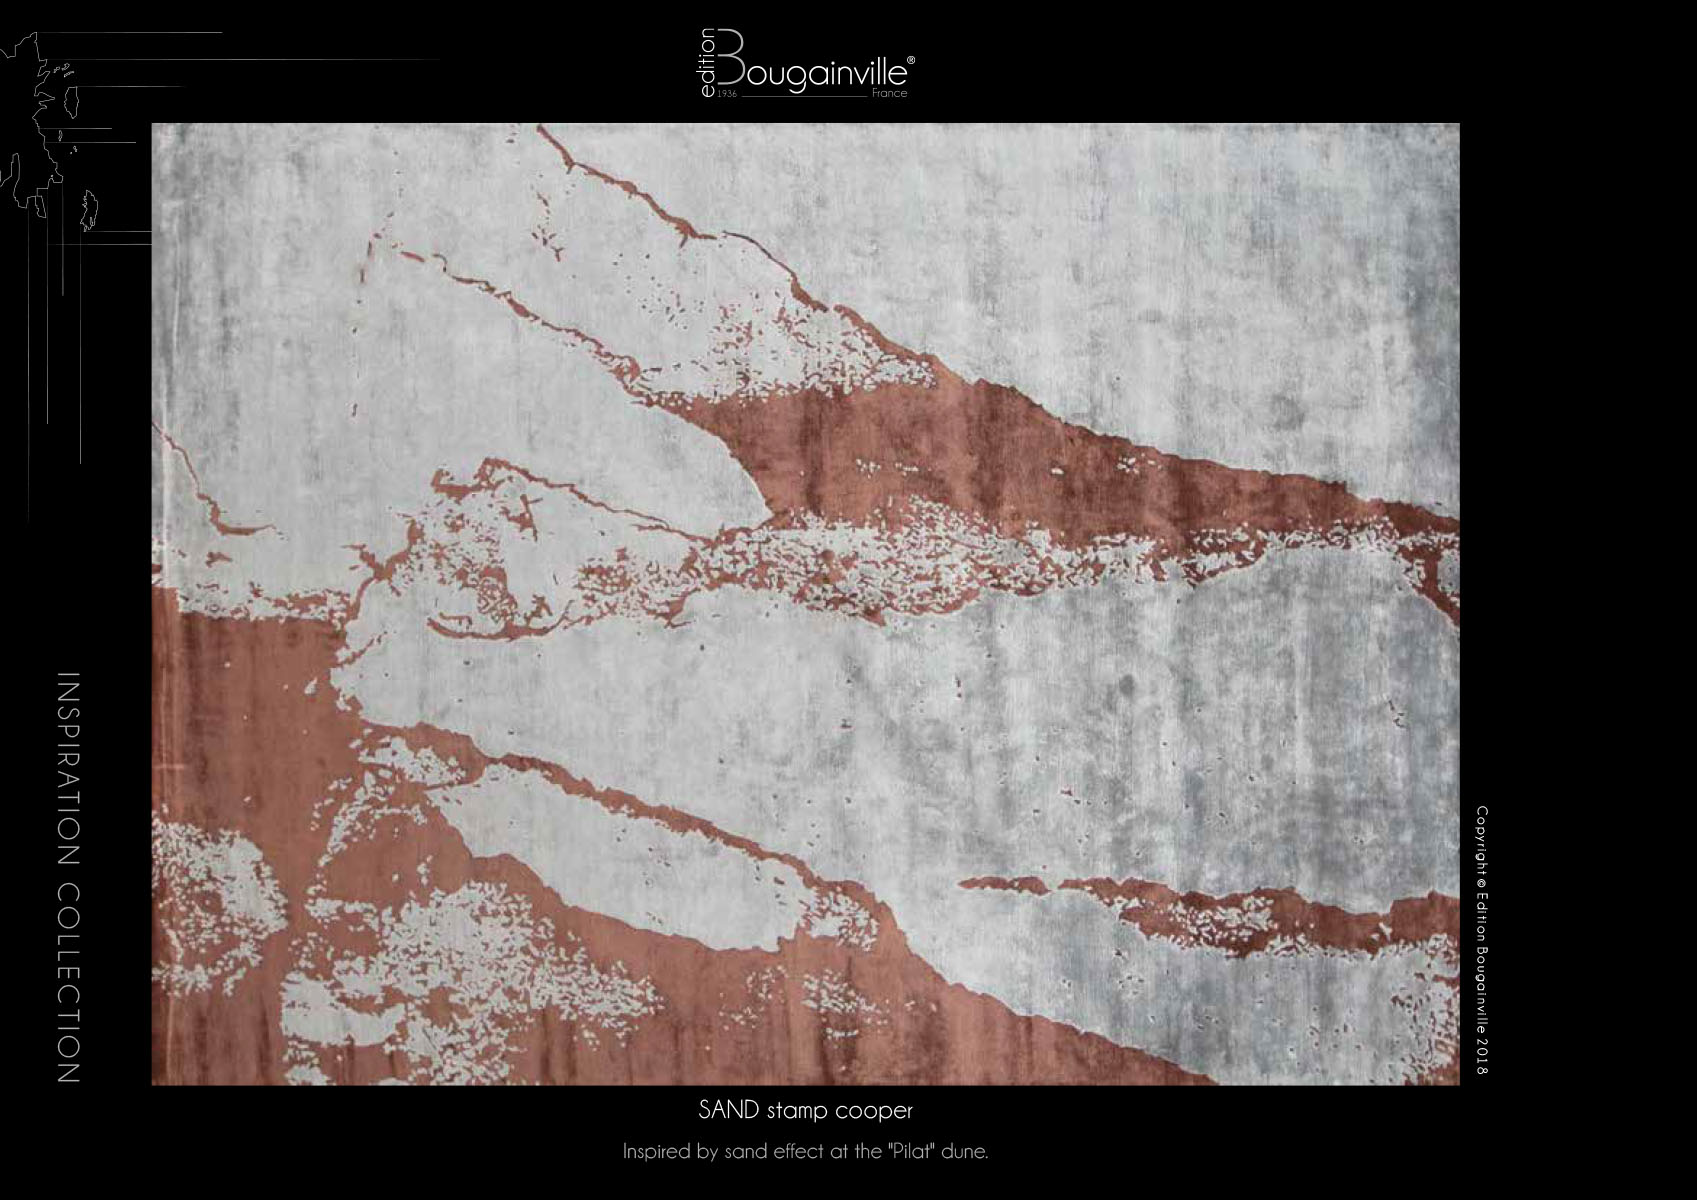 Ковер Edition Bougainville, SAND stamp cooper